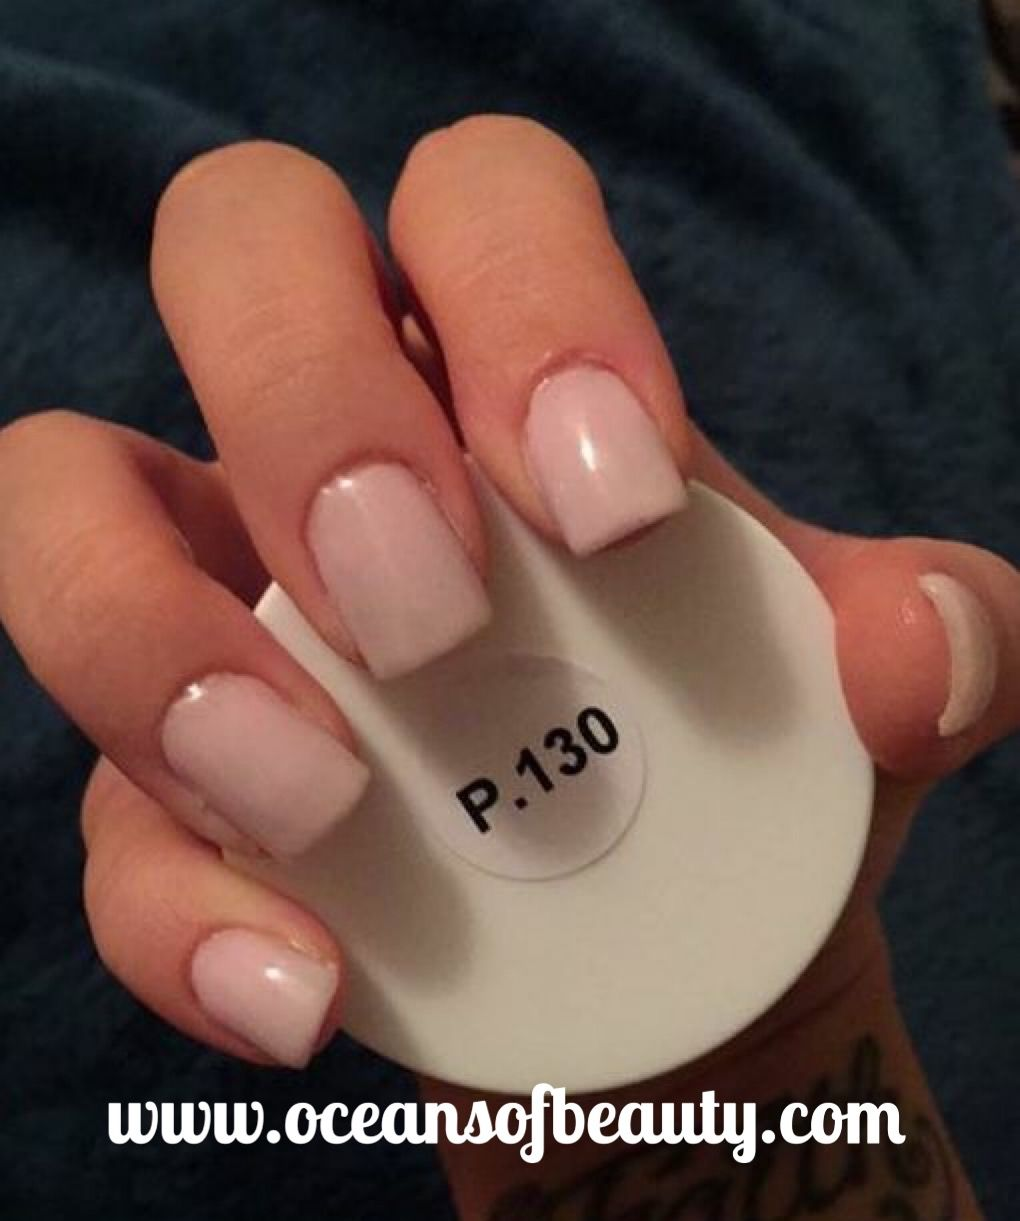 Pin by Sparkle & Co. Luxe Nails on EZ Dip Powder Nails | Pinterest ...